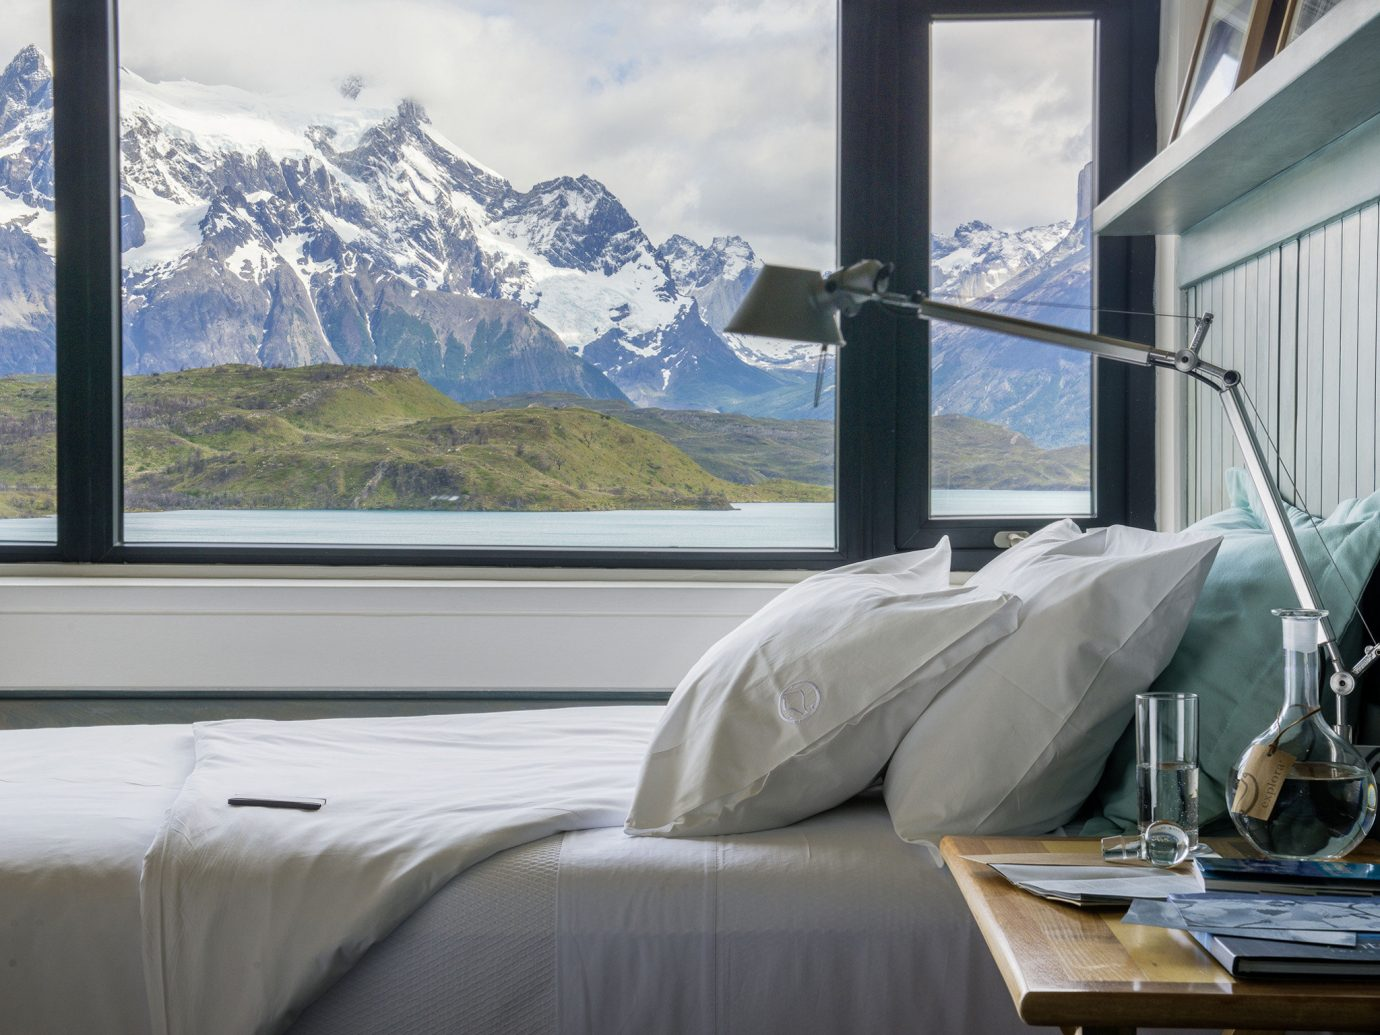 Hotels window mountain indoor Boat room vehicle house yacht home interior design passenger ship luxury yacht